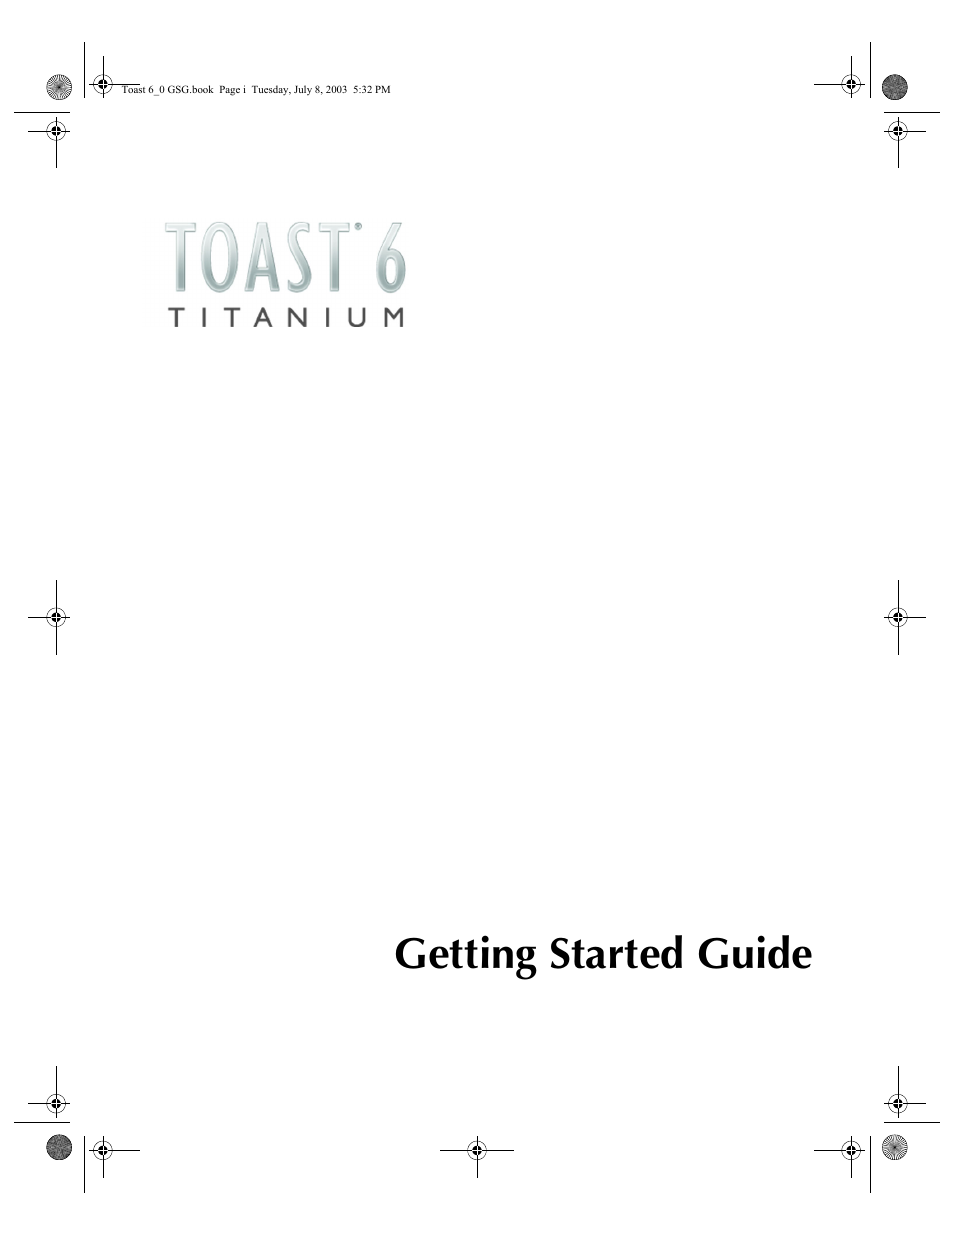 roxio toast 6 user manual 132 pages rh manualsdir com roxio toast 16 user manual roxio toast 16 user manual